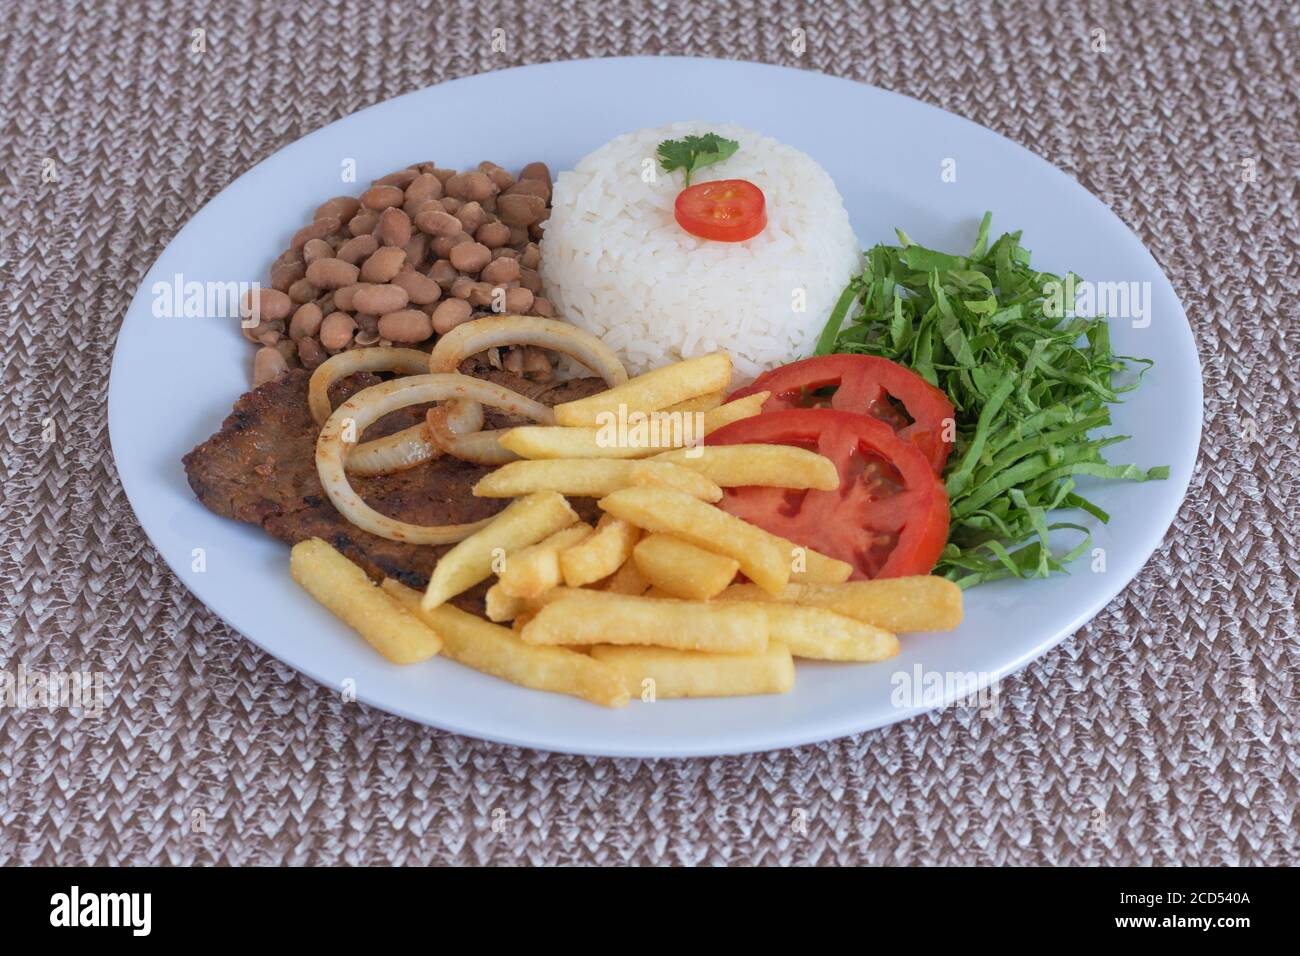 Brazilian Food Dish Beans Rice Meat Chips Cabbage Tomatoes Onions Executive Dish Dish Done Top View Stock Photo Alamy